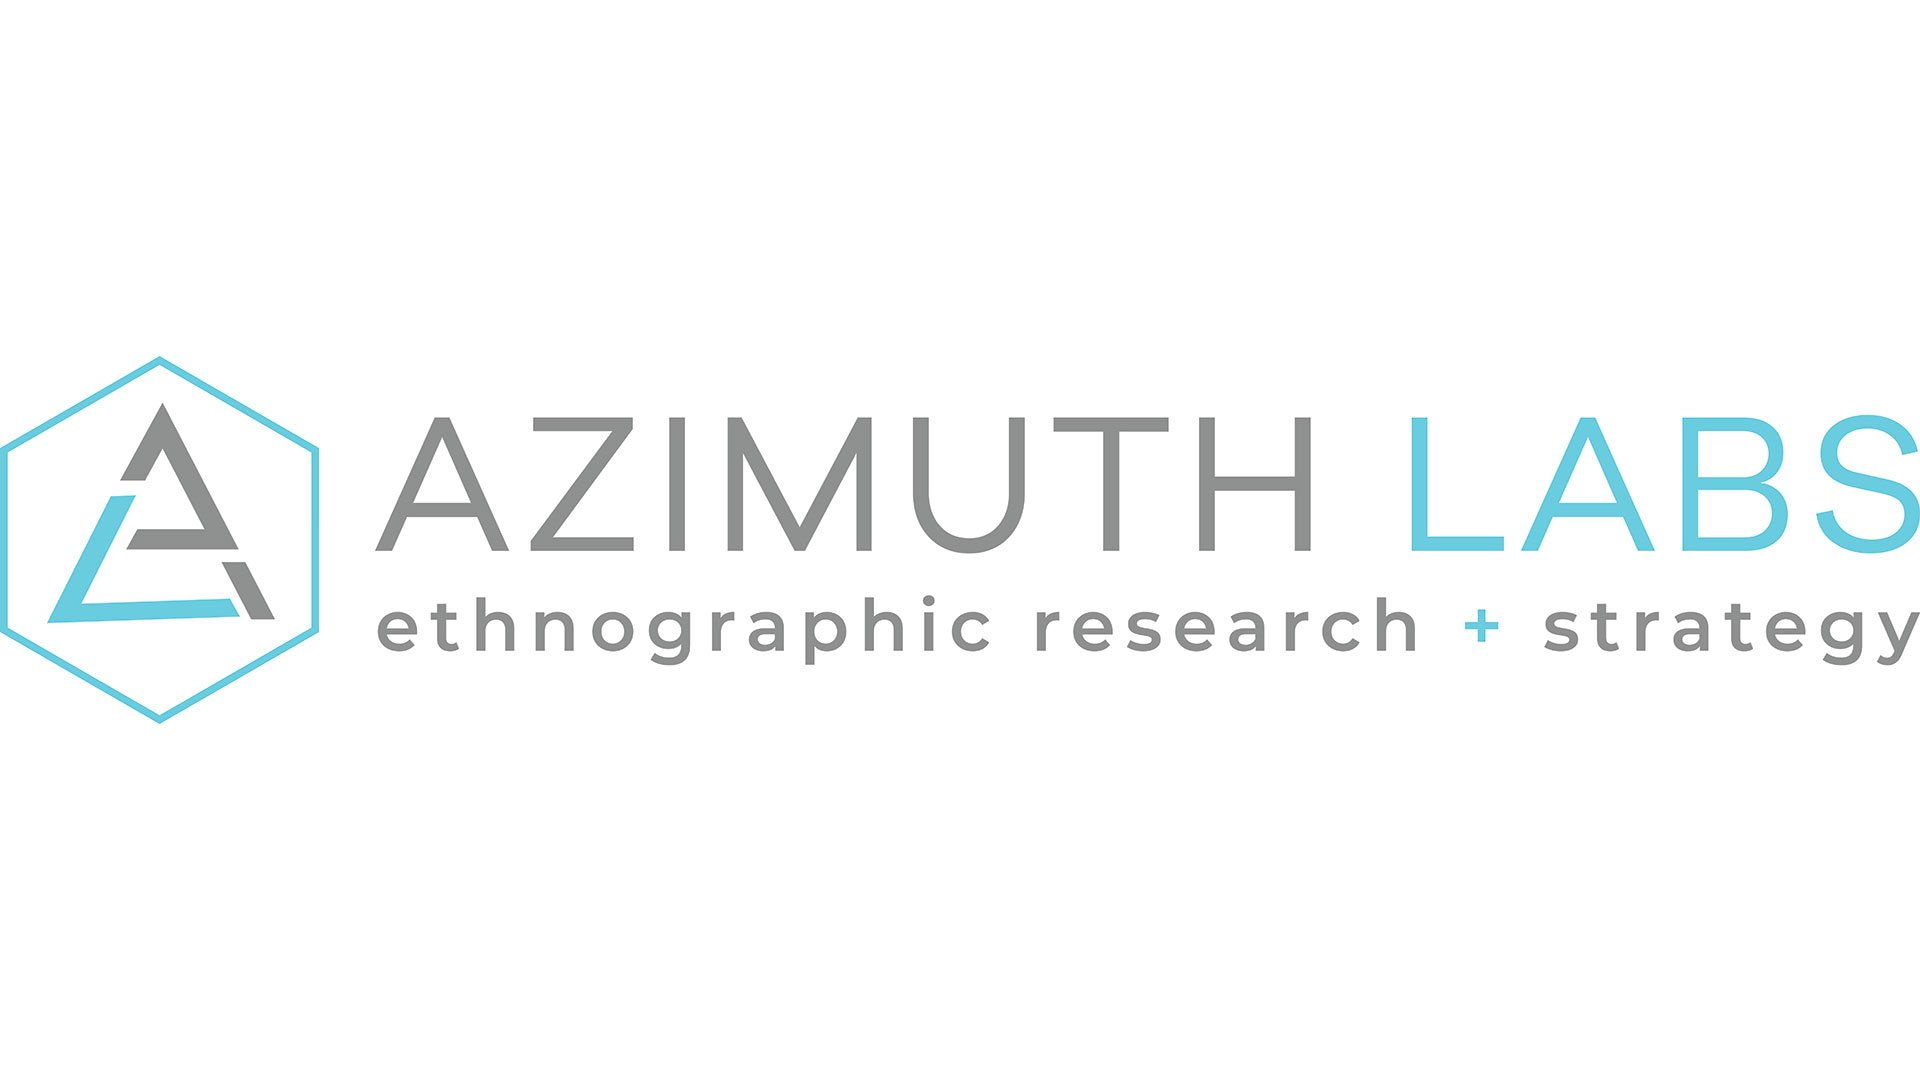 azimuth labs ethnographic research company